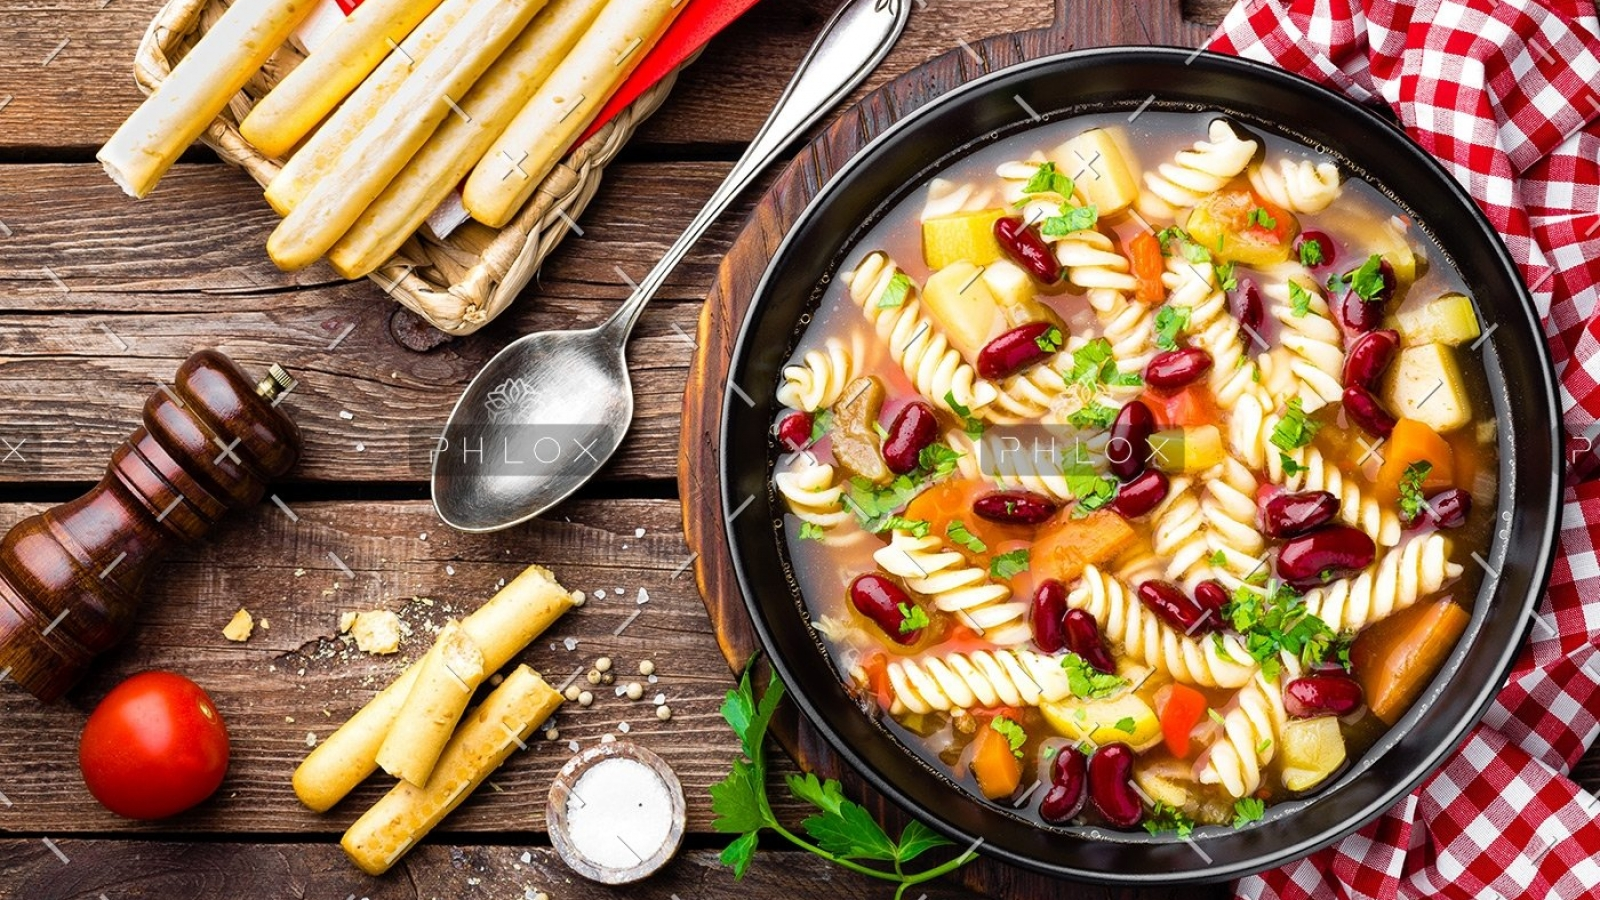 demo-attachment-14-minestrone-soup-vegetable-soup-with-pasta-PHU79AS